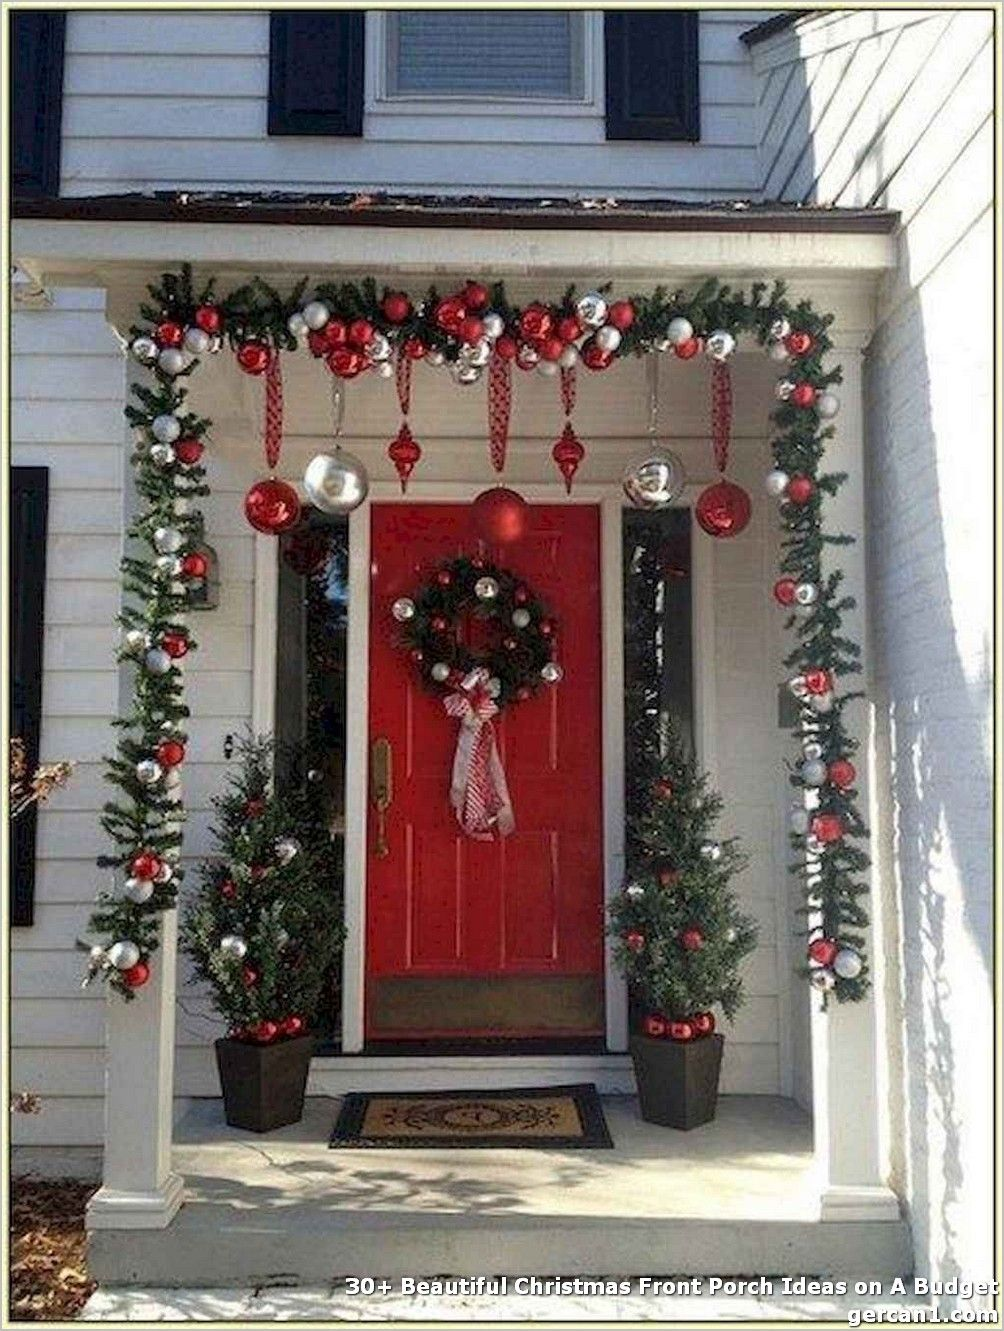 30 Beautiful Christmas Front Porch Ideas On A Budget Christmas Porch Decor Christmas Decorations Diy Outdoor Porch Christmas Tree